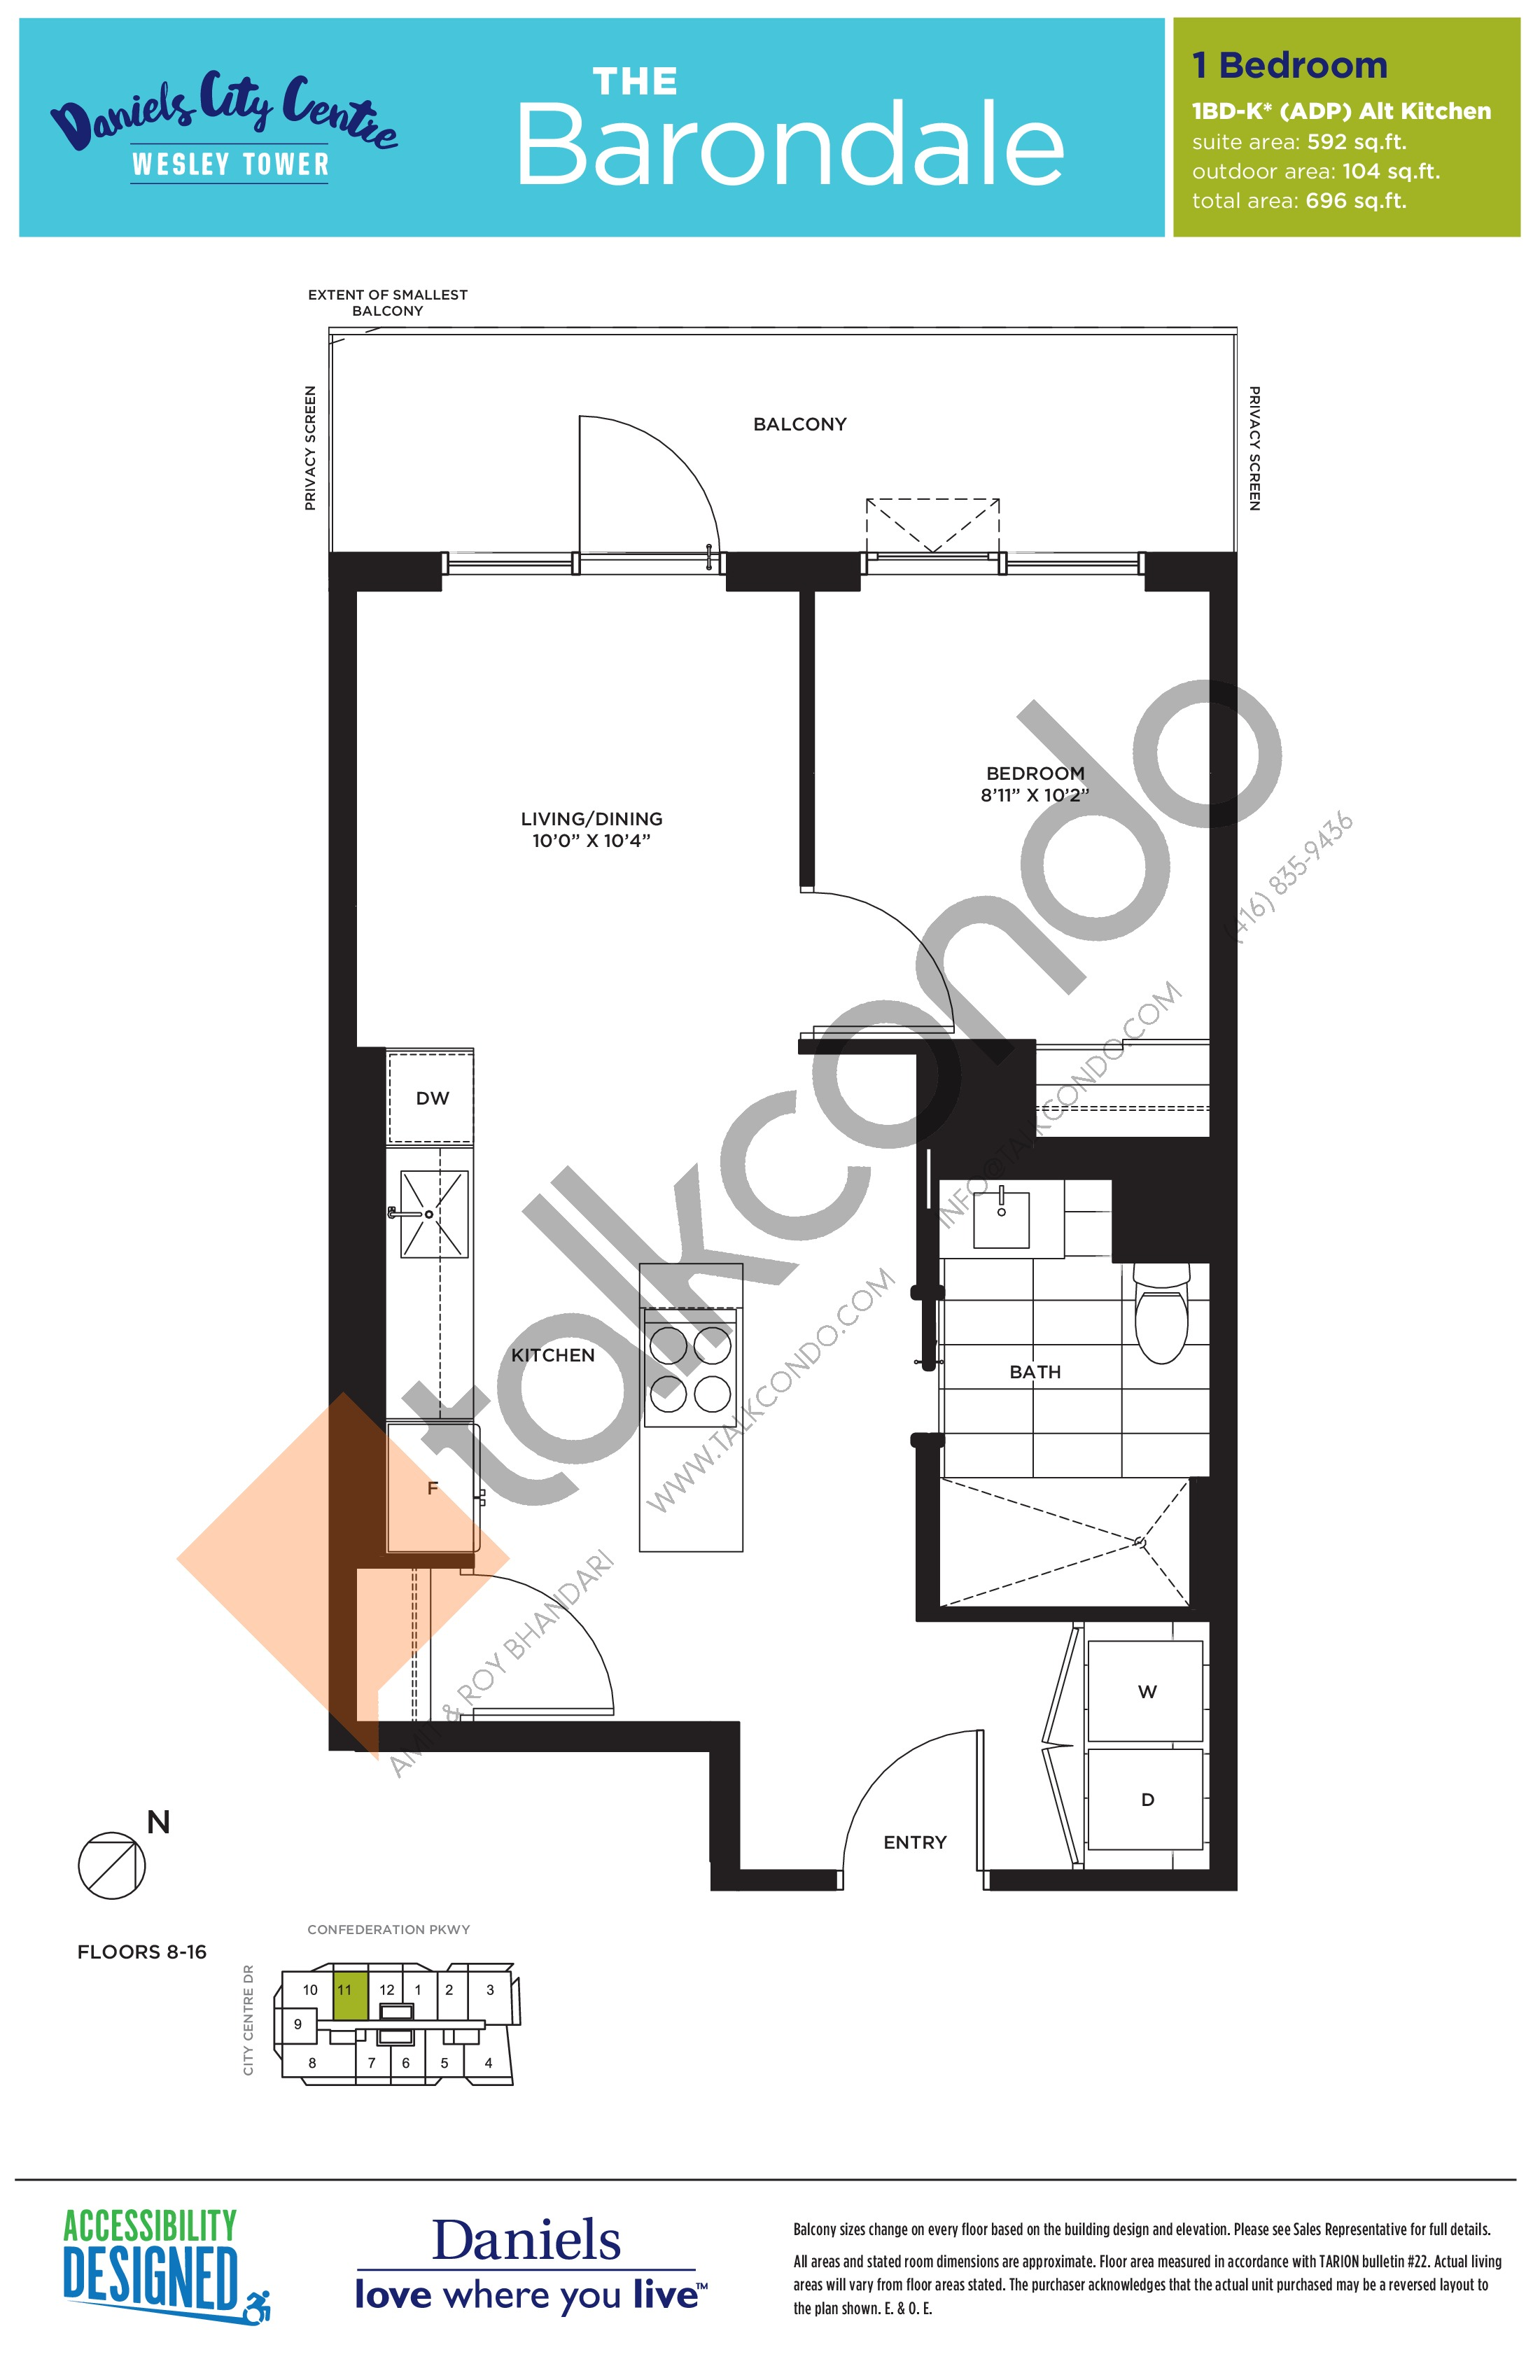 The Barondale Floor Plan at The Wesley Tower at Daniels City Centre Condos - 592 sq.ft